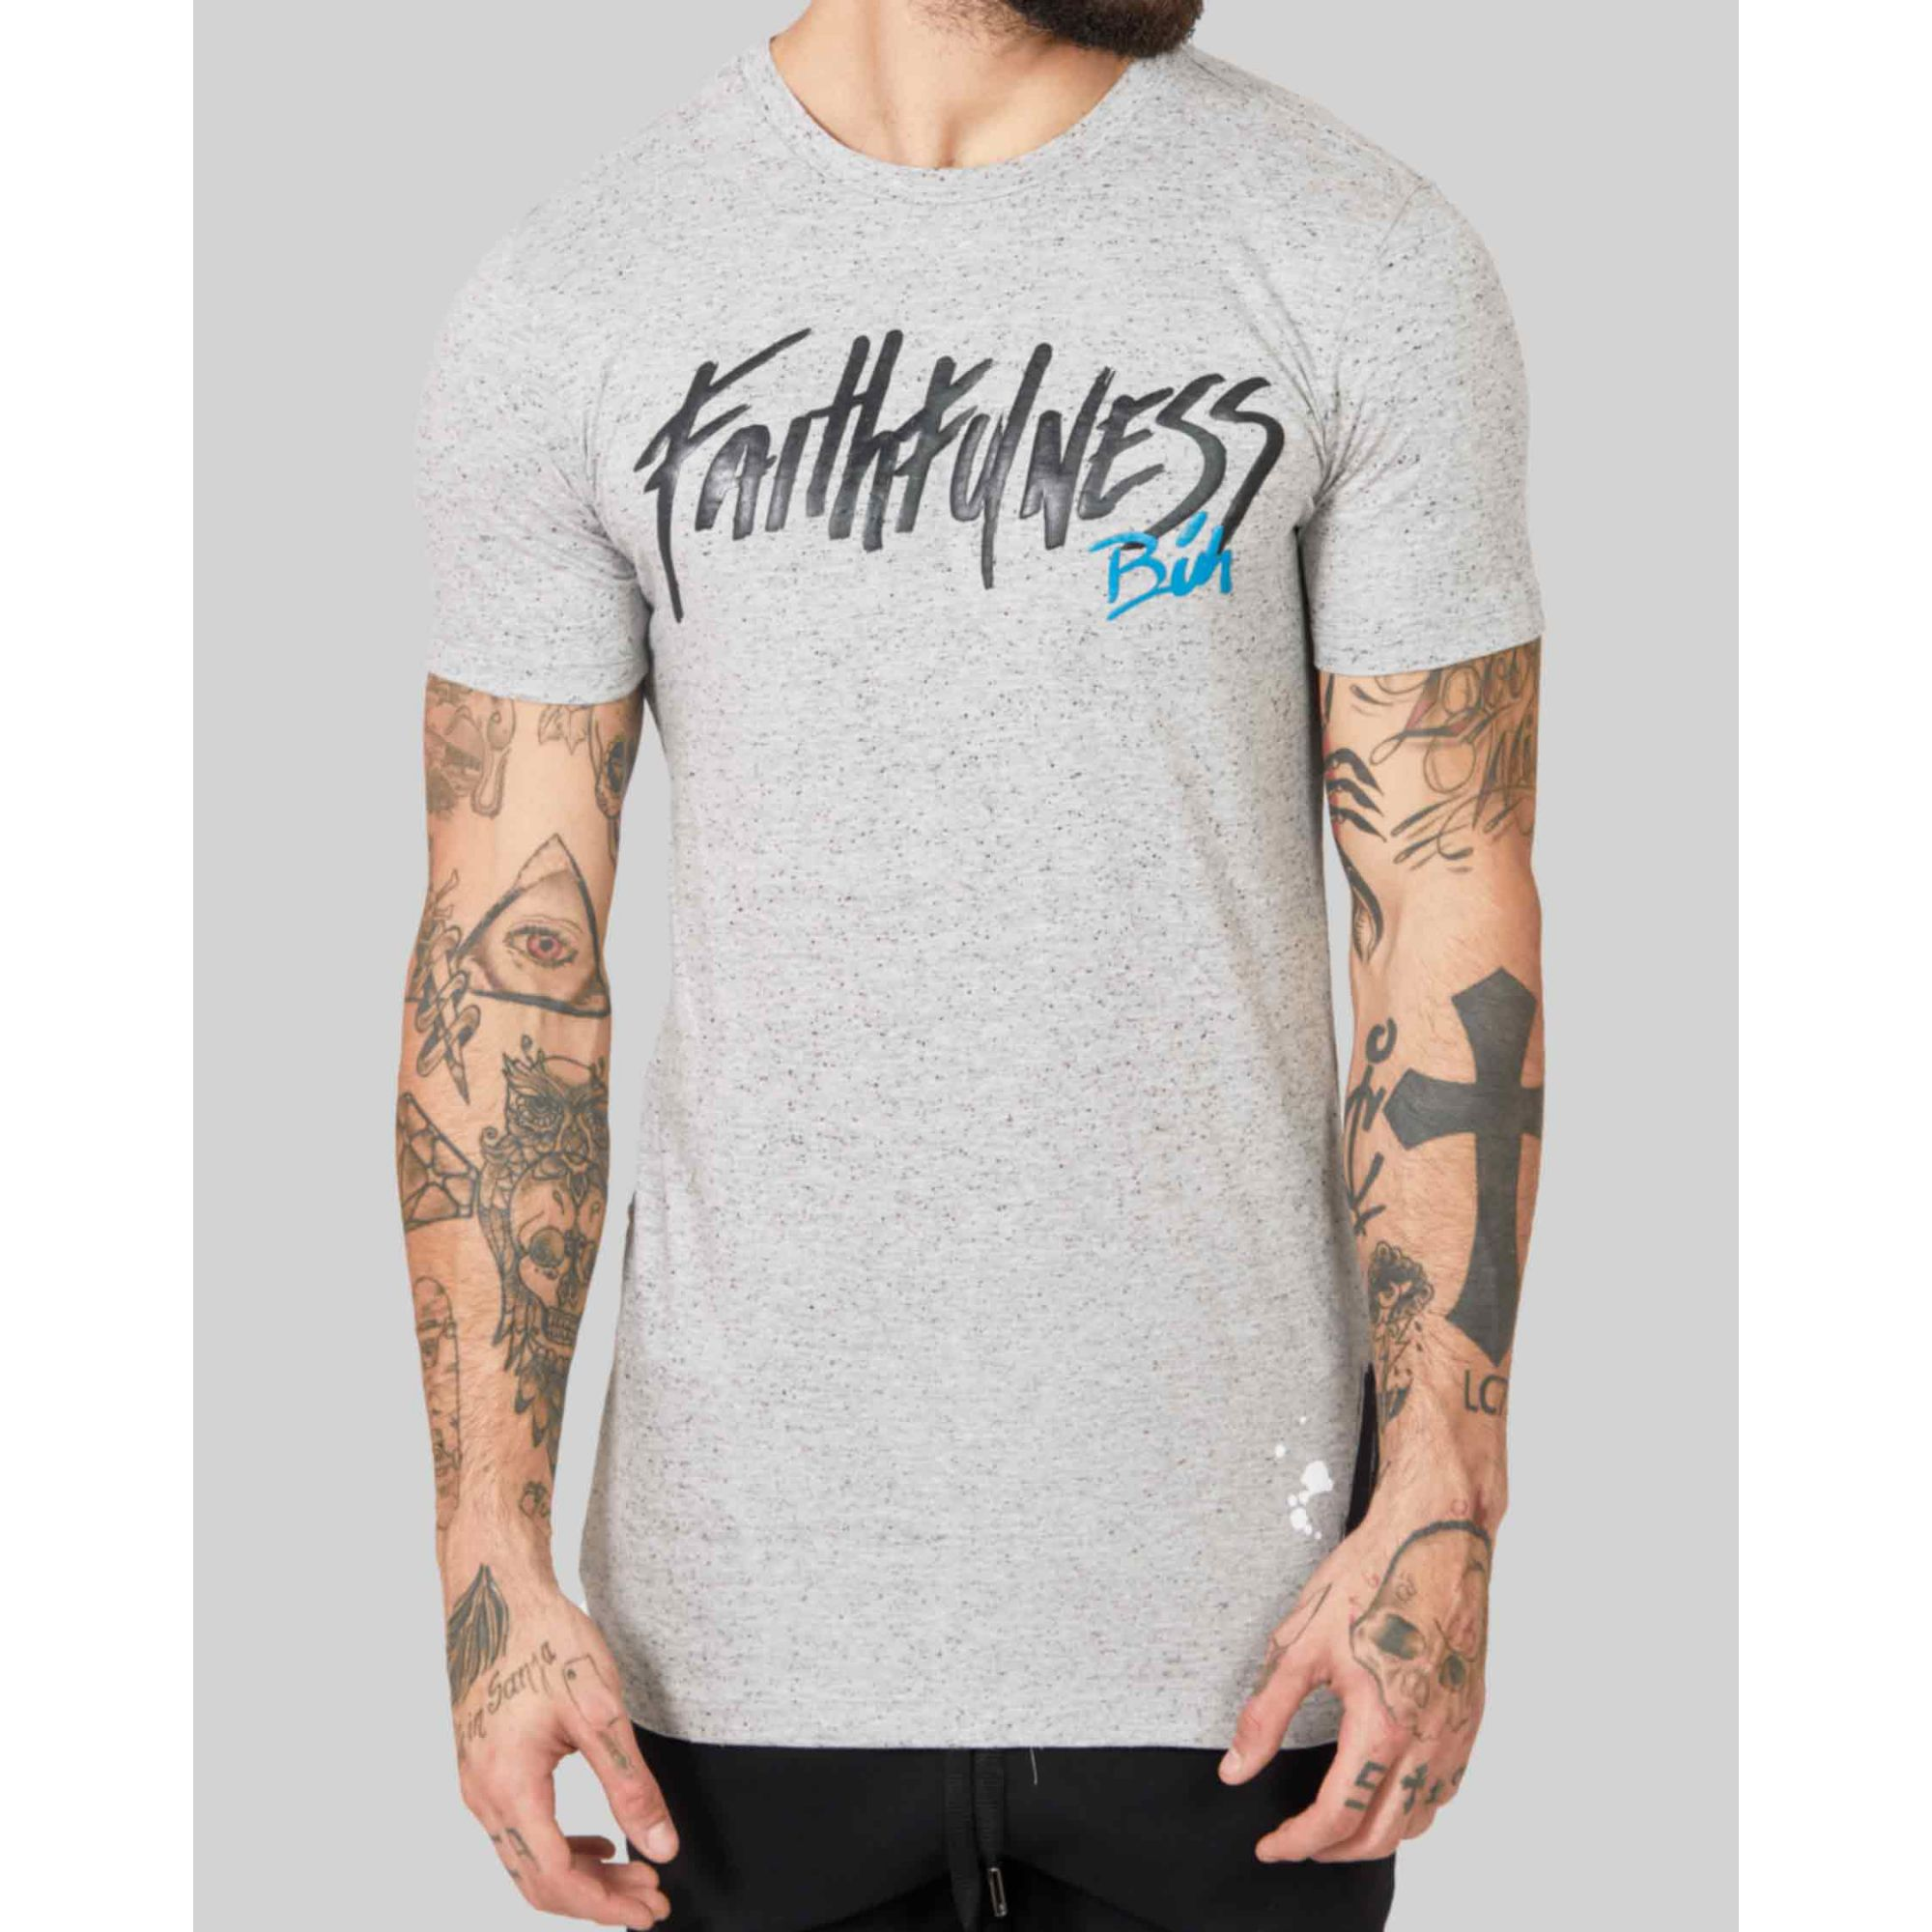 Camiseta Buh FaithFulness